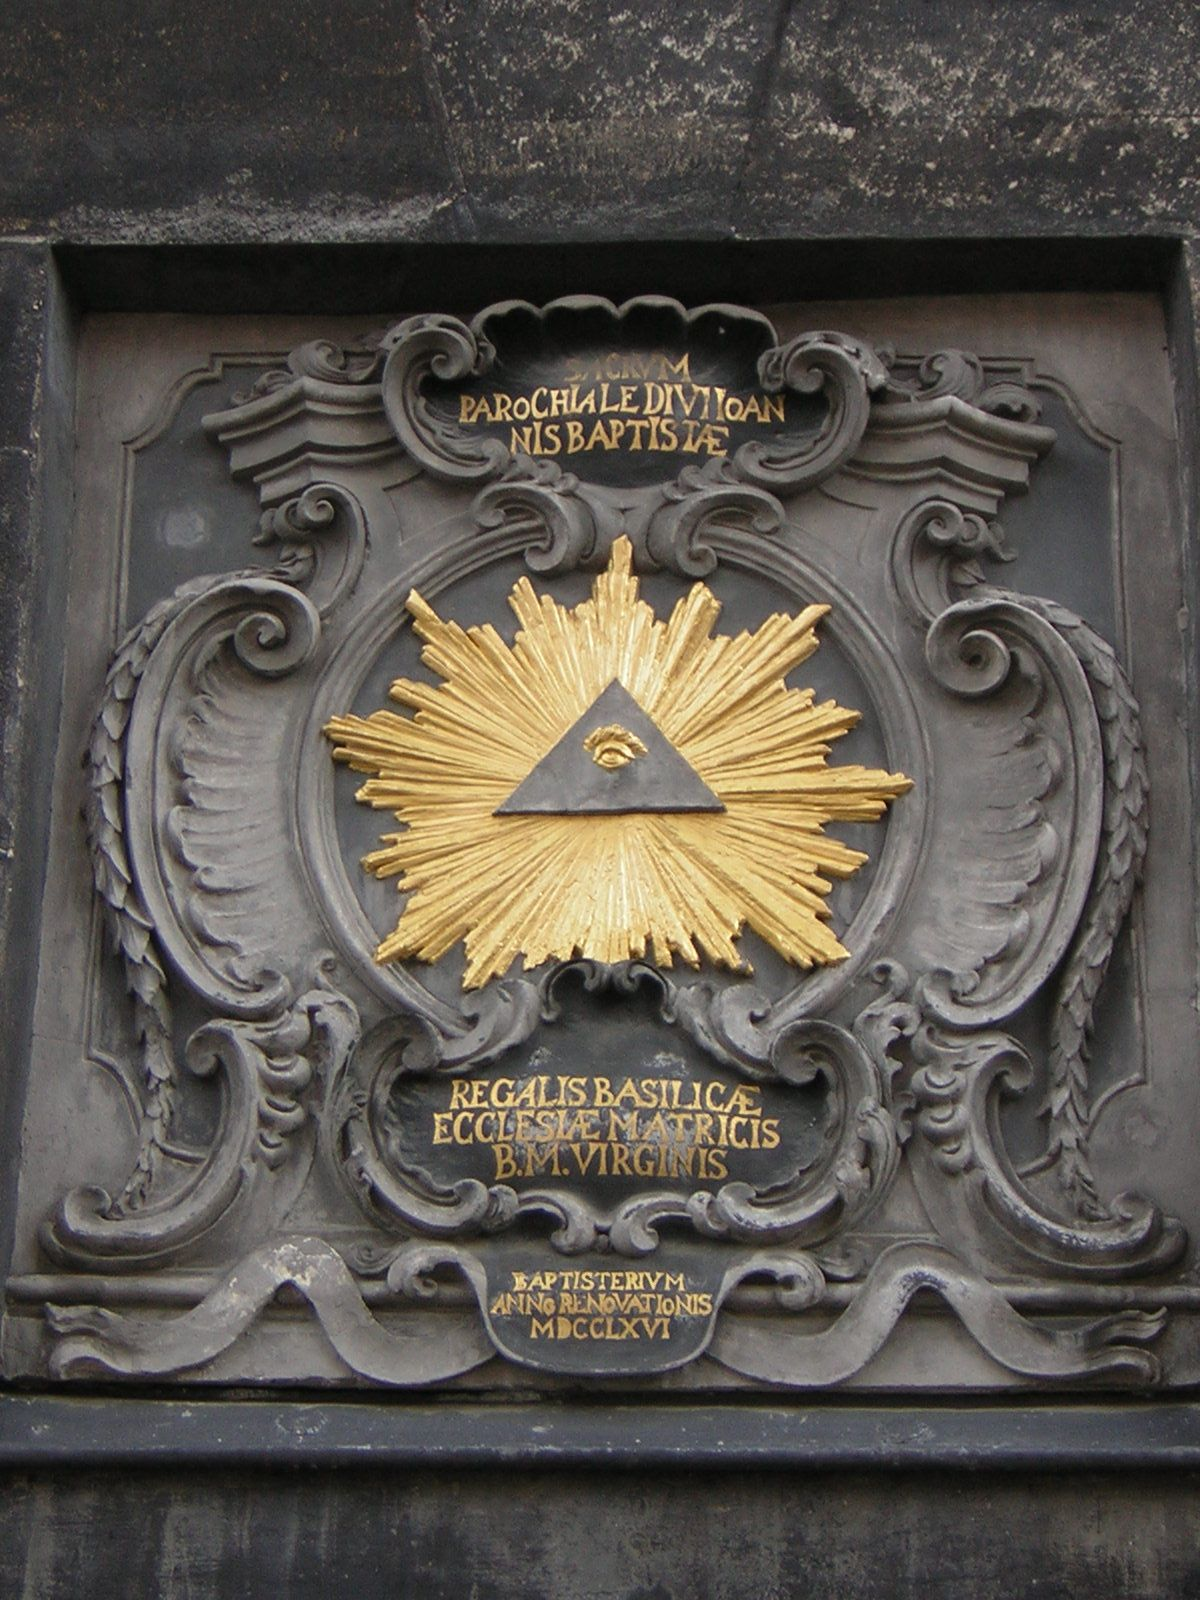 Cyclope divin nwo mind control illuminati others society all seeing eye illuminati symbol appearing on gate of aachen cathedral biocorpaavc